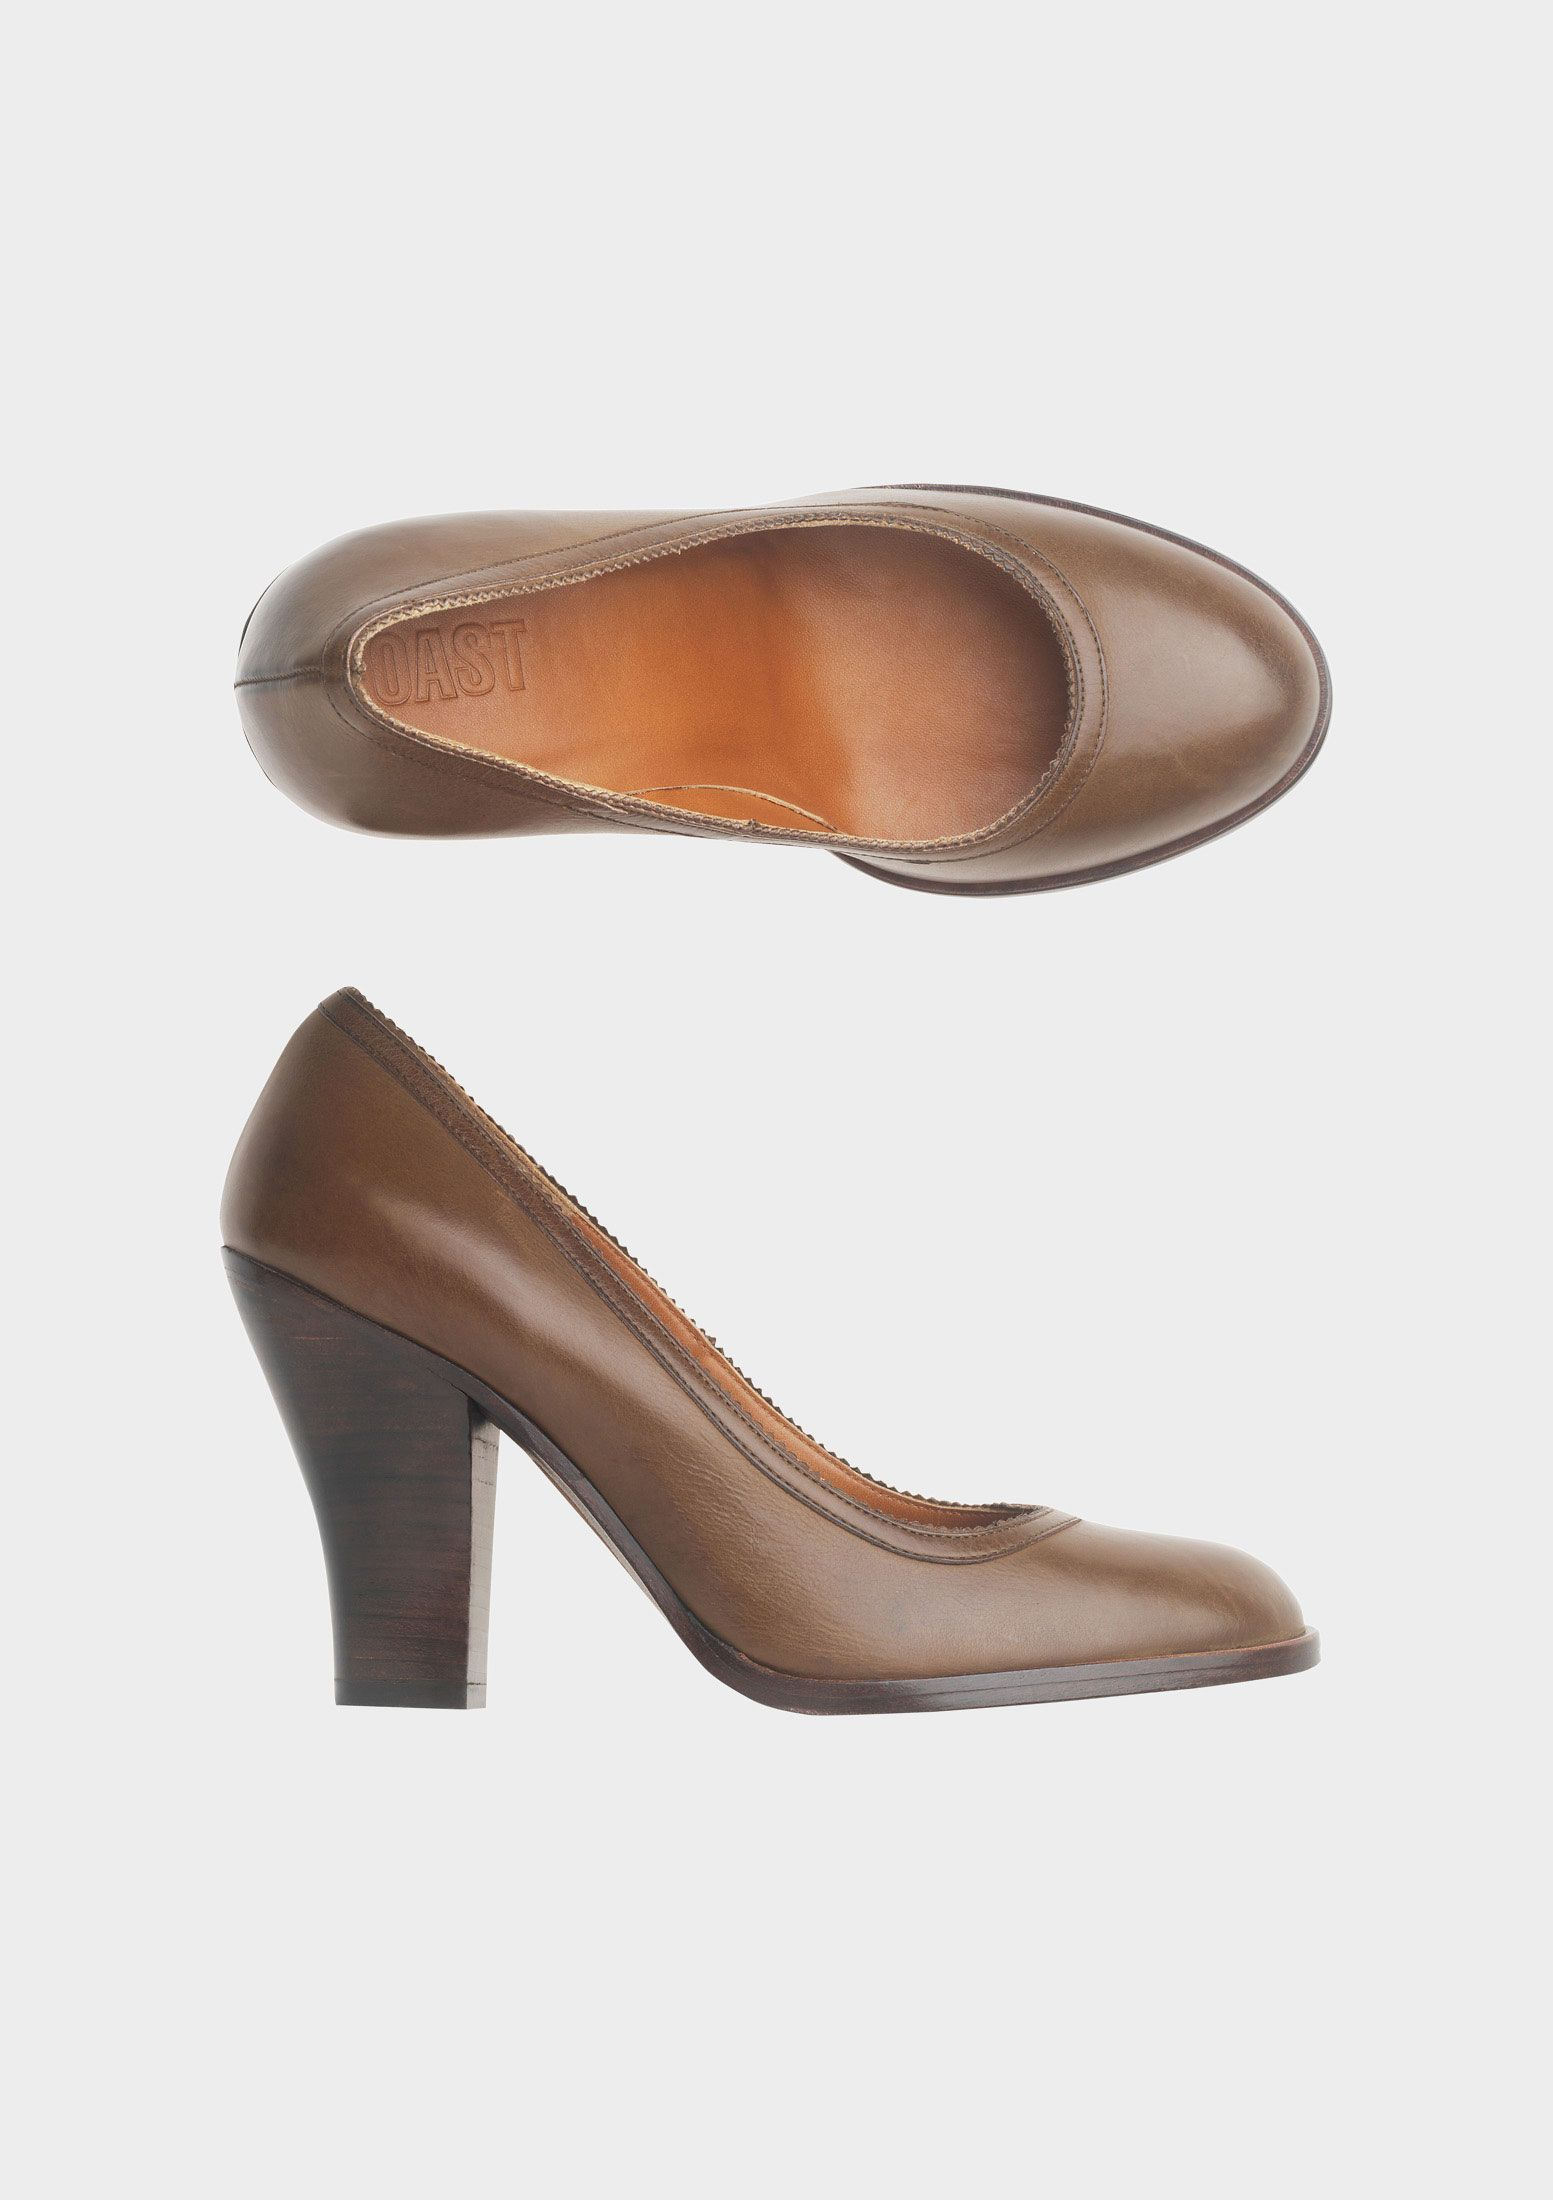 HEELED PUMP by TOAST these are lovely